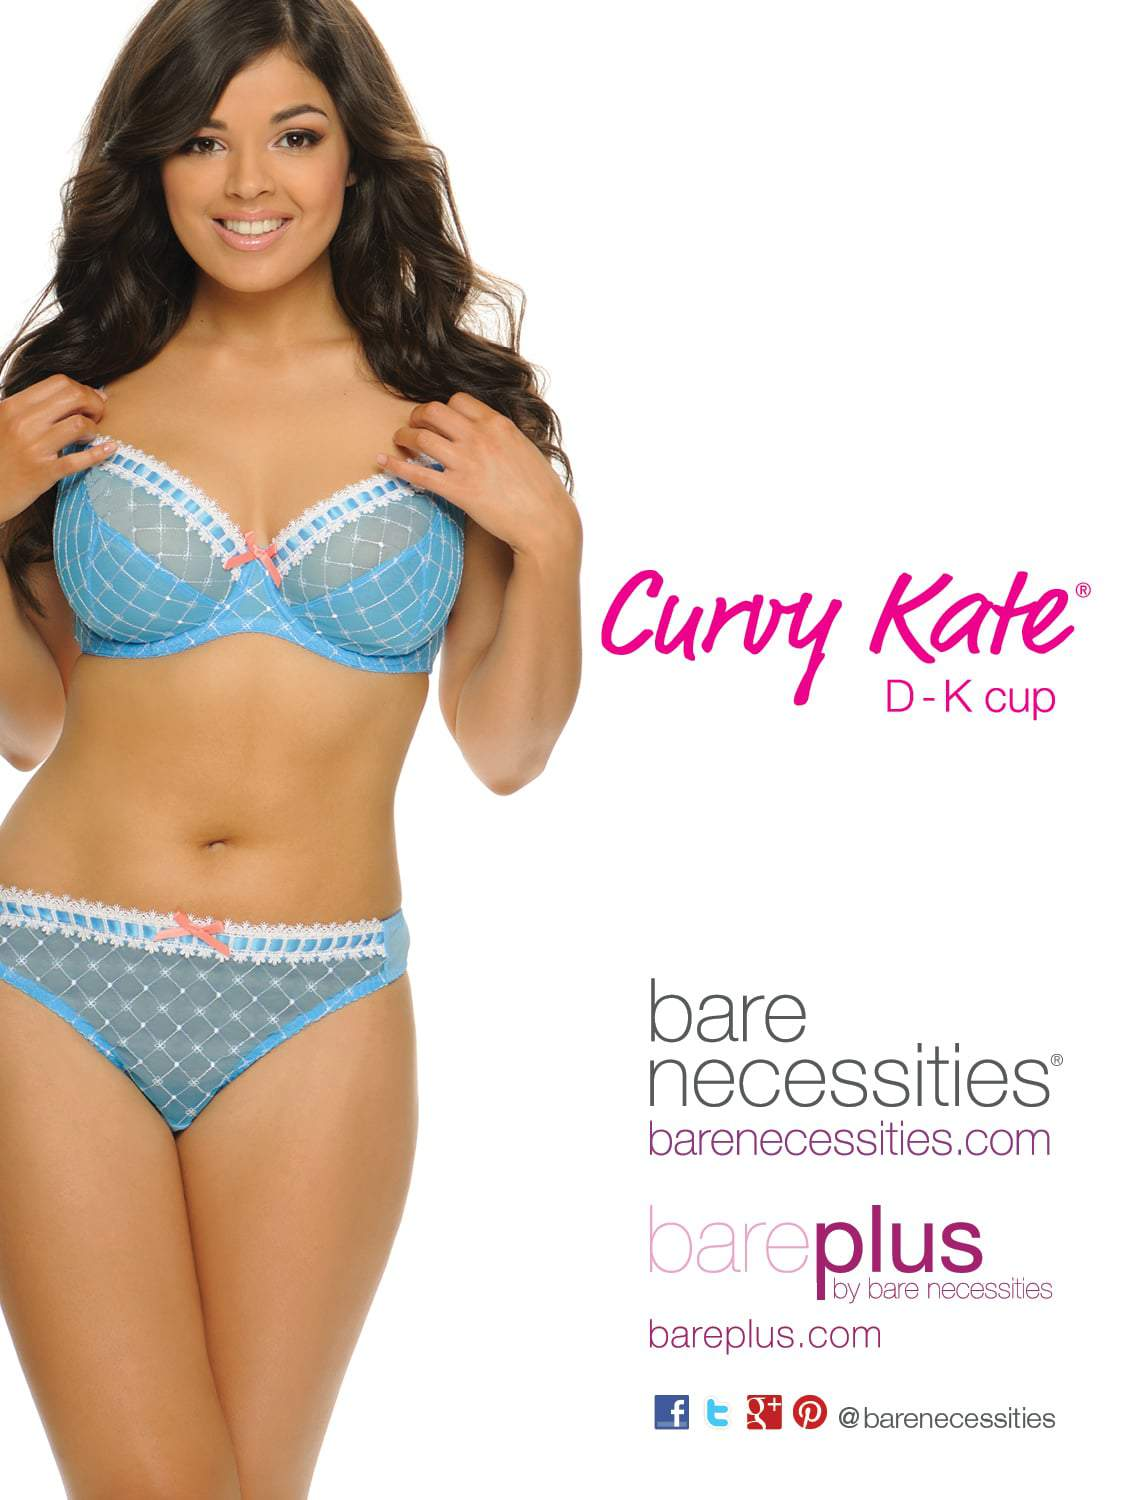 Curvy Kate Star in a Bra Competition